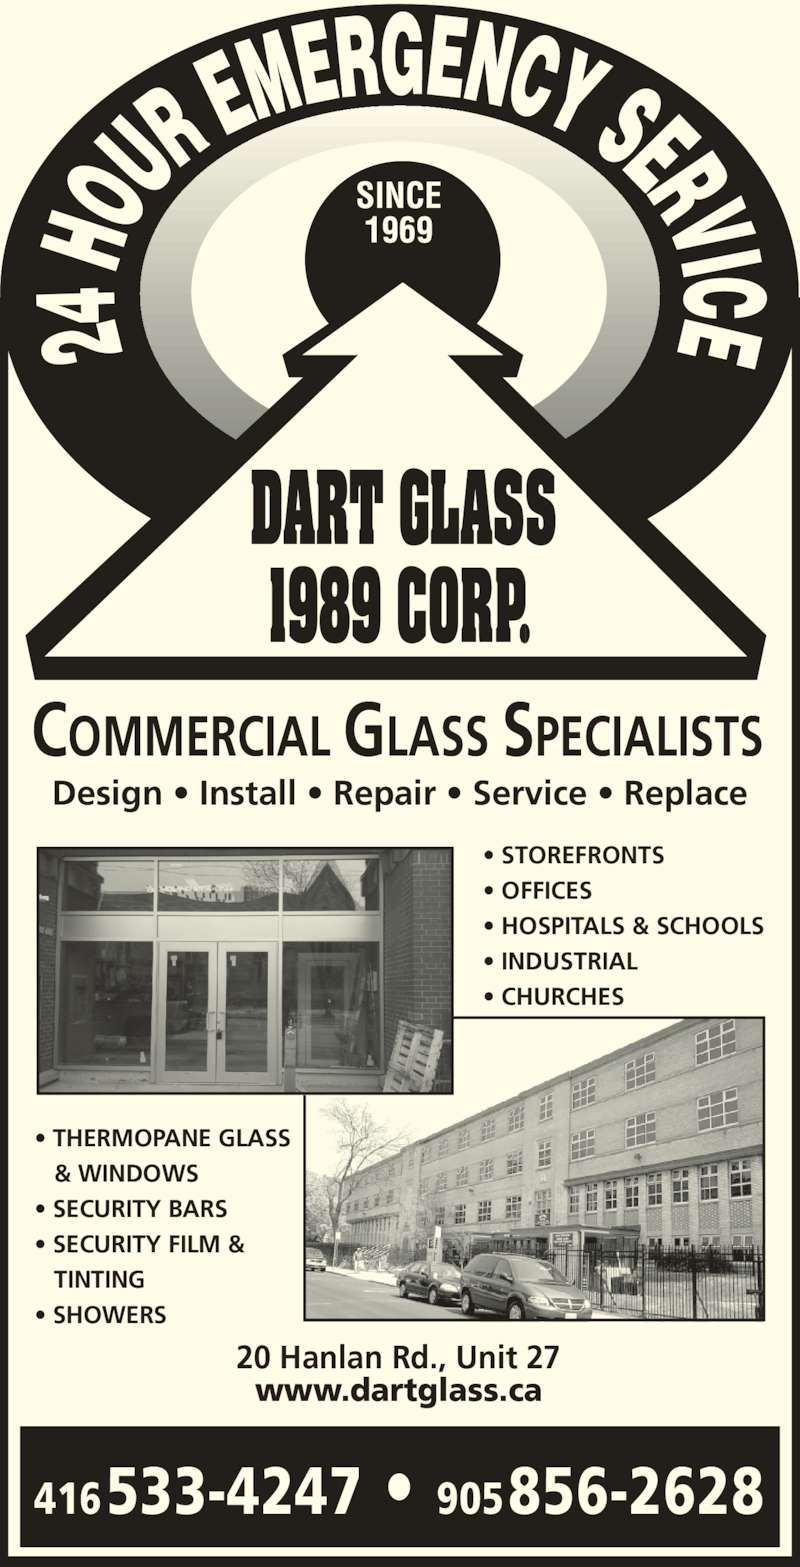 Dart Glass 1989 Corp (416-532-5952) - Display Ad - • OFFICES • HOSPITALS & SCHOOLS • INDUSTRIAL • CHURCHES • THERMOPANE GLASS    & WINDOWS • SECURITY BARS • SECURITY FILM &    TINTING • SHOWERS 416533-4247 • 905 856-2628 20 Hanlan Rd., Unit 27 www.dartglass.ca COMMERCIAL GLASS SPECIALISTS Design • Install • Repair • Service • Replace 1989 CORP. • STOREFRONTS